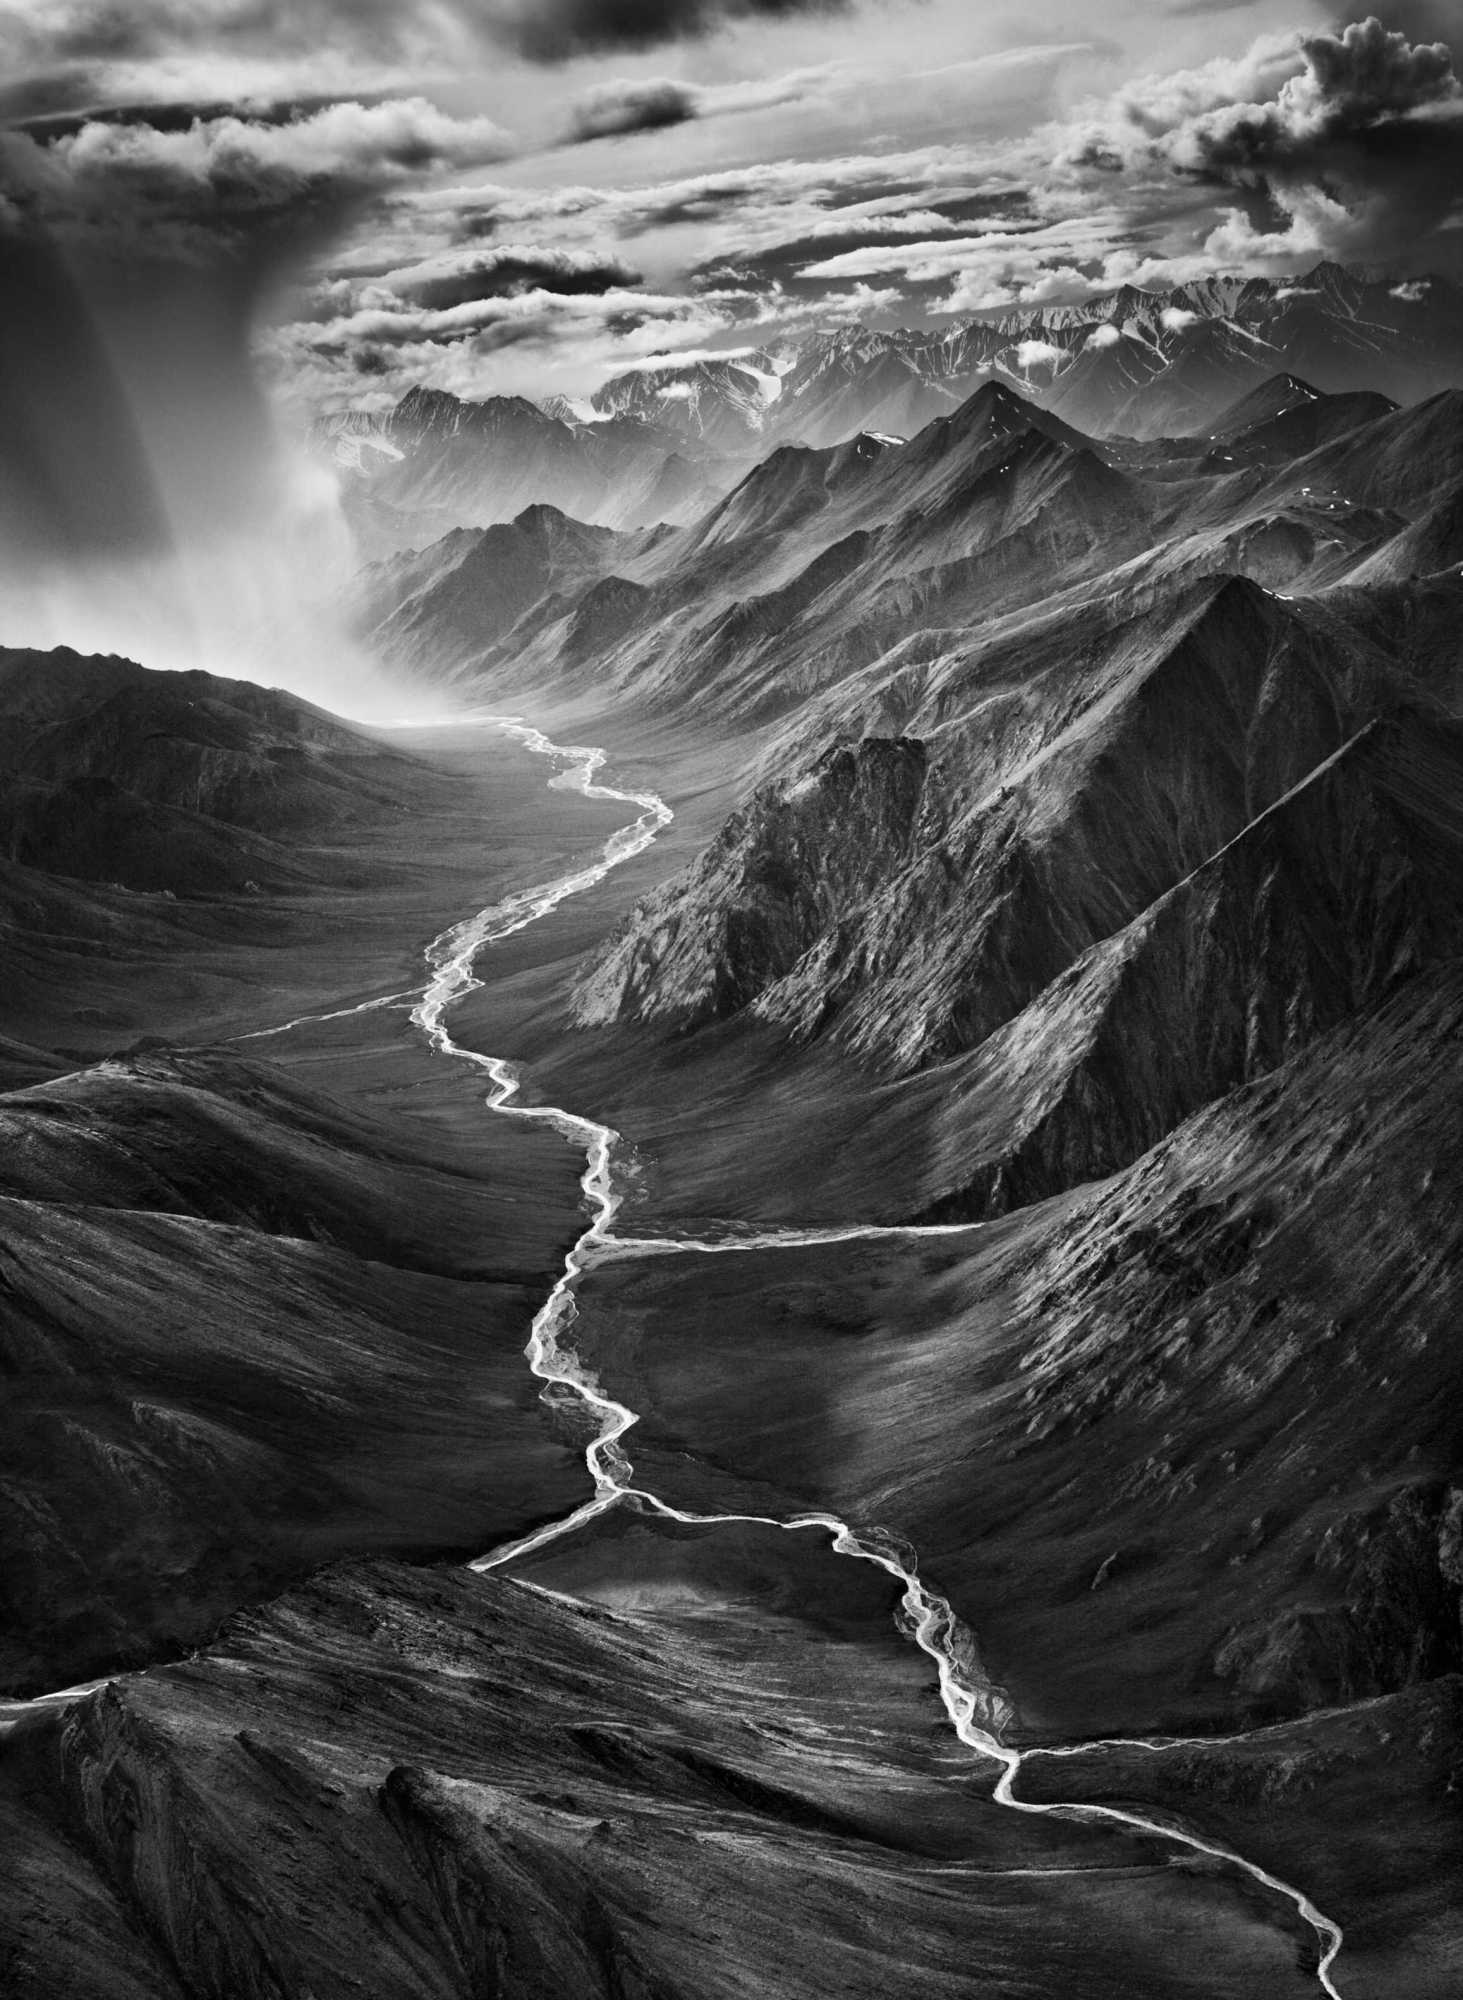 Photo by Sebastiao Salgado / Genesis